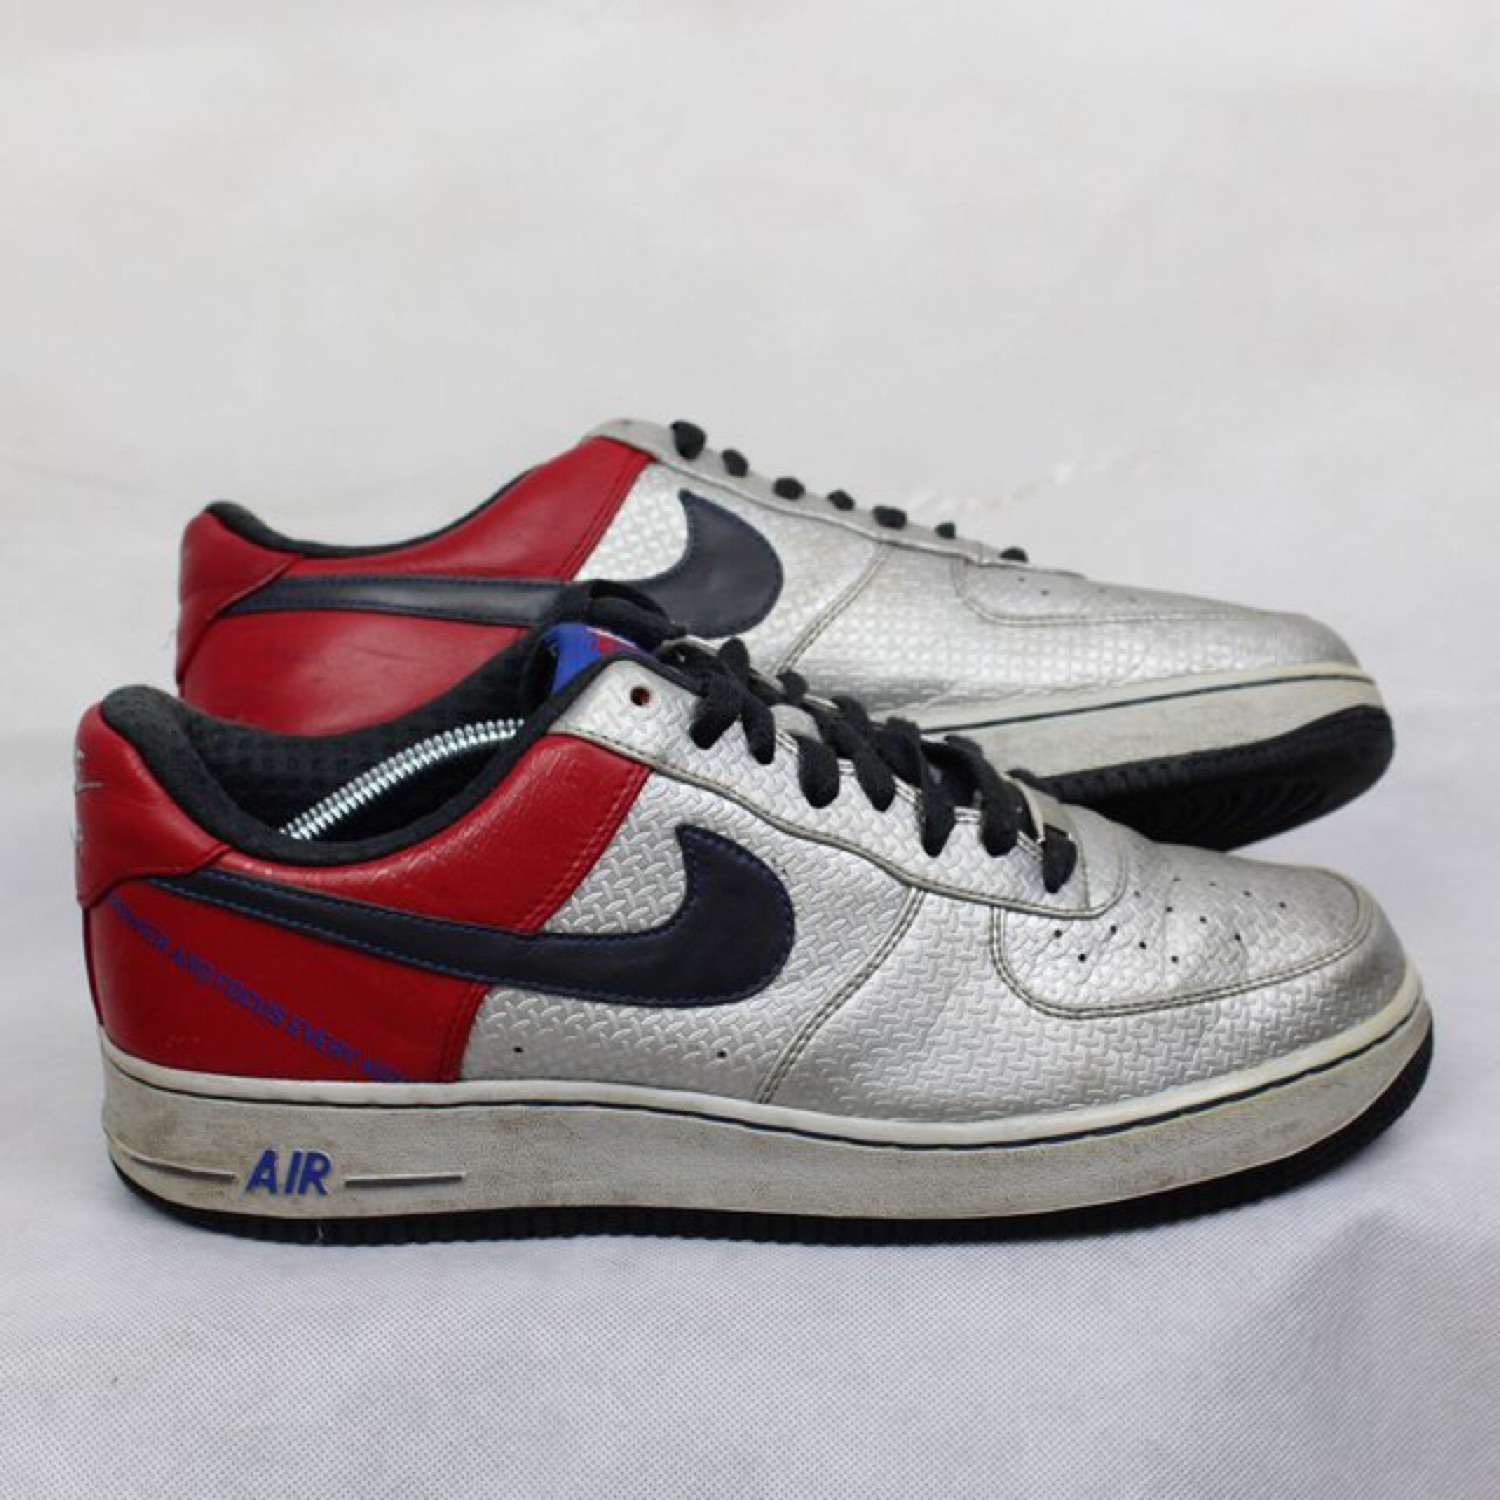 Vintage Nike Air Force 1 Size Uk 10 2006 Trainers